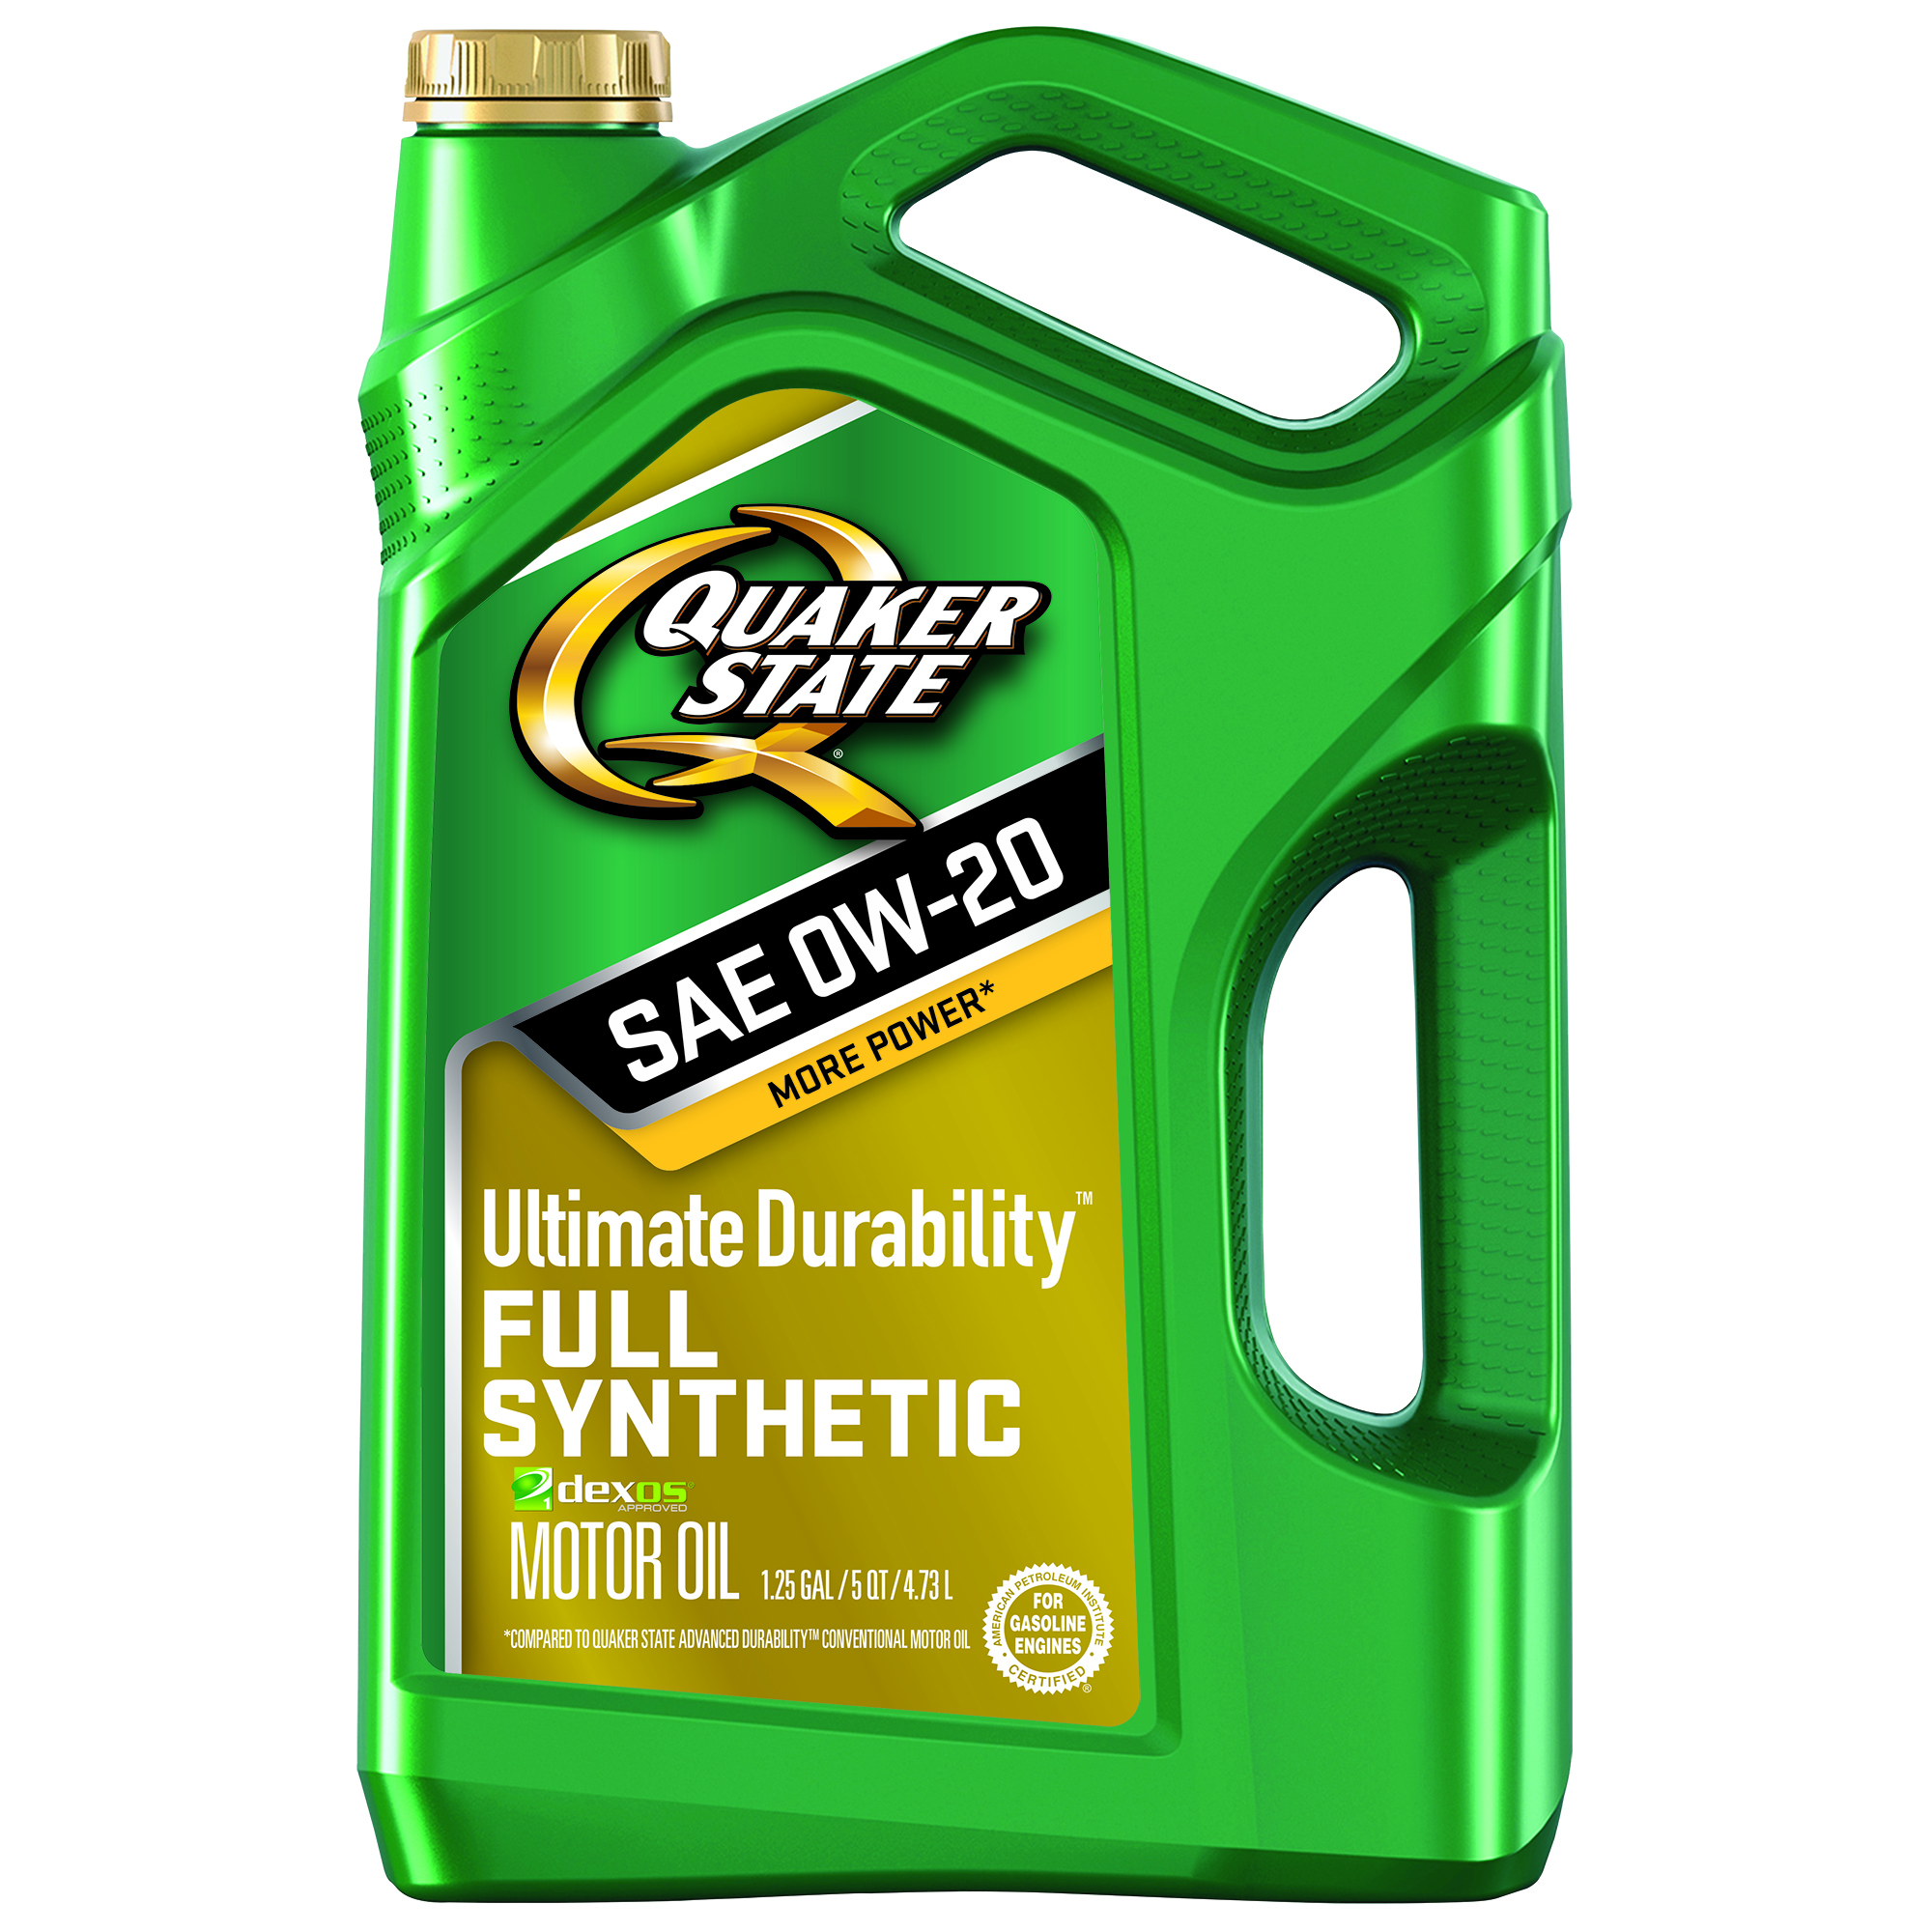 Quaker State Ultimate Durability 0W-20 Dexos Full Synthetic Motor Oil, 5 qt